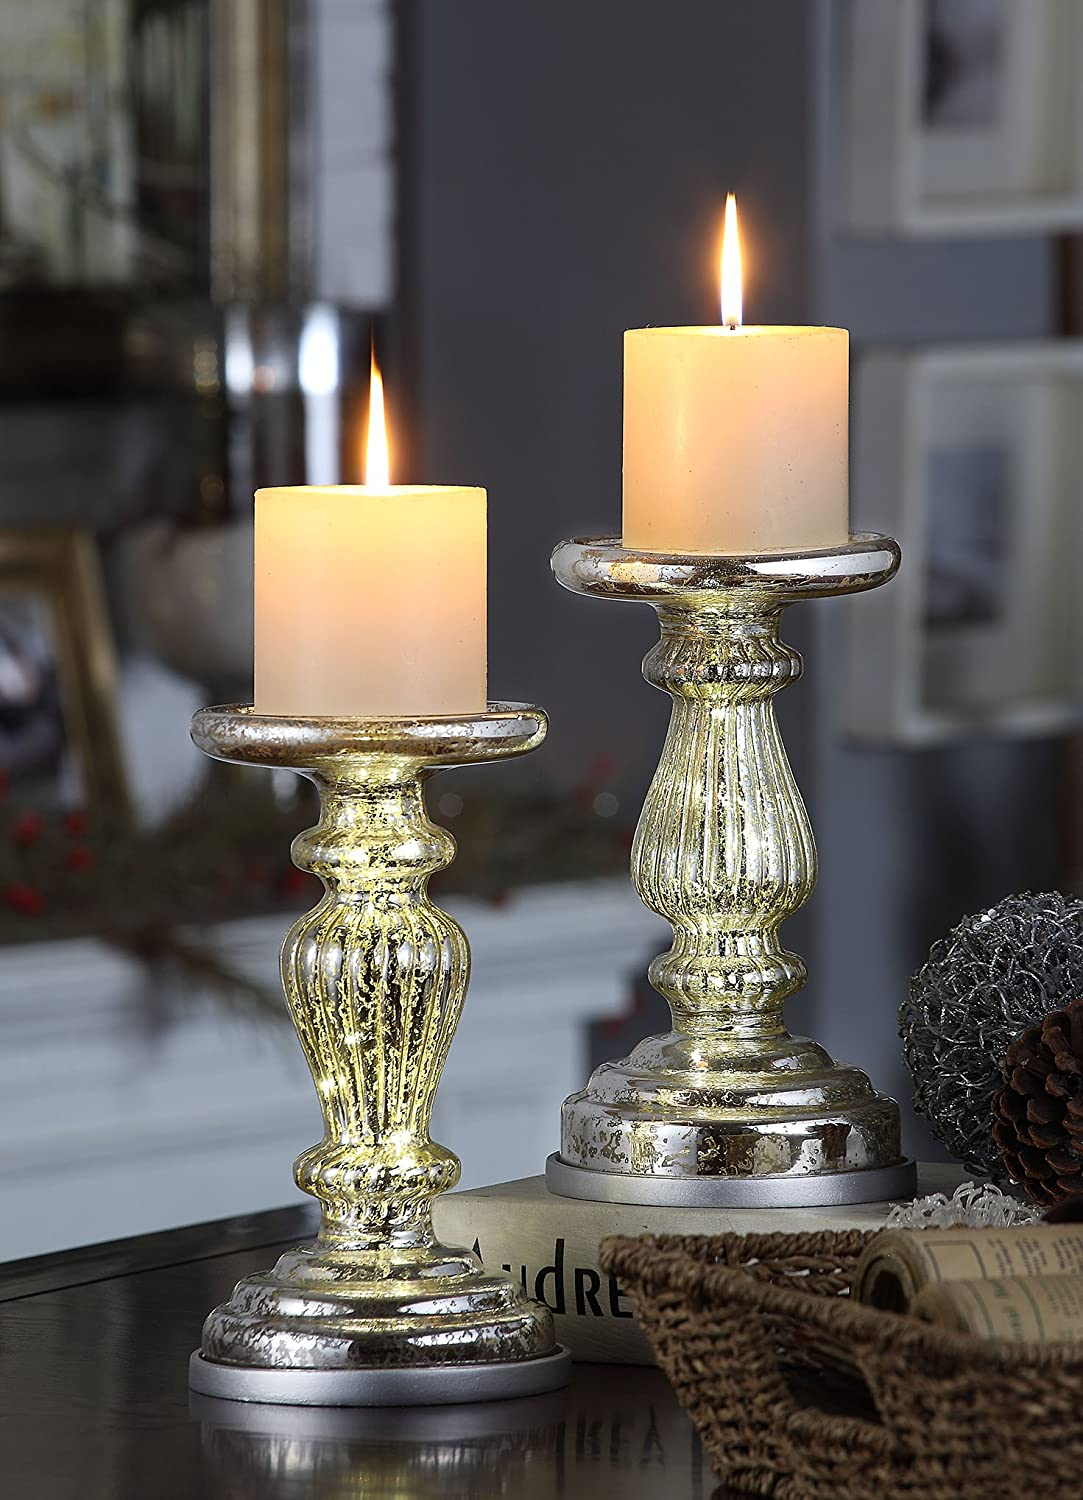 Silver Mercury Glass Lit Pillar Candle Holders Set of 2 | ChristmasTablescapeDecor.com